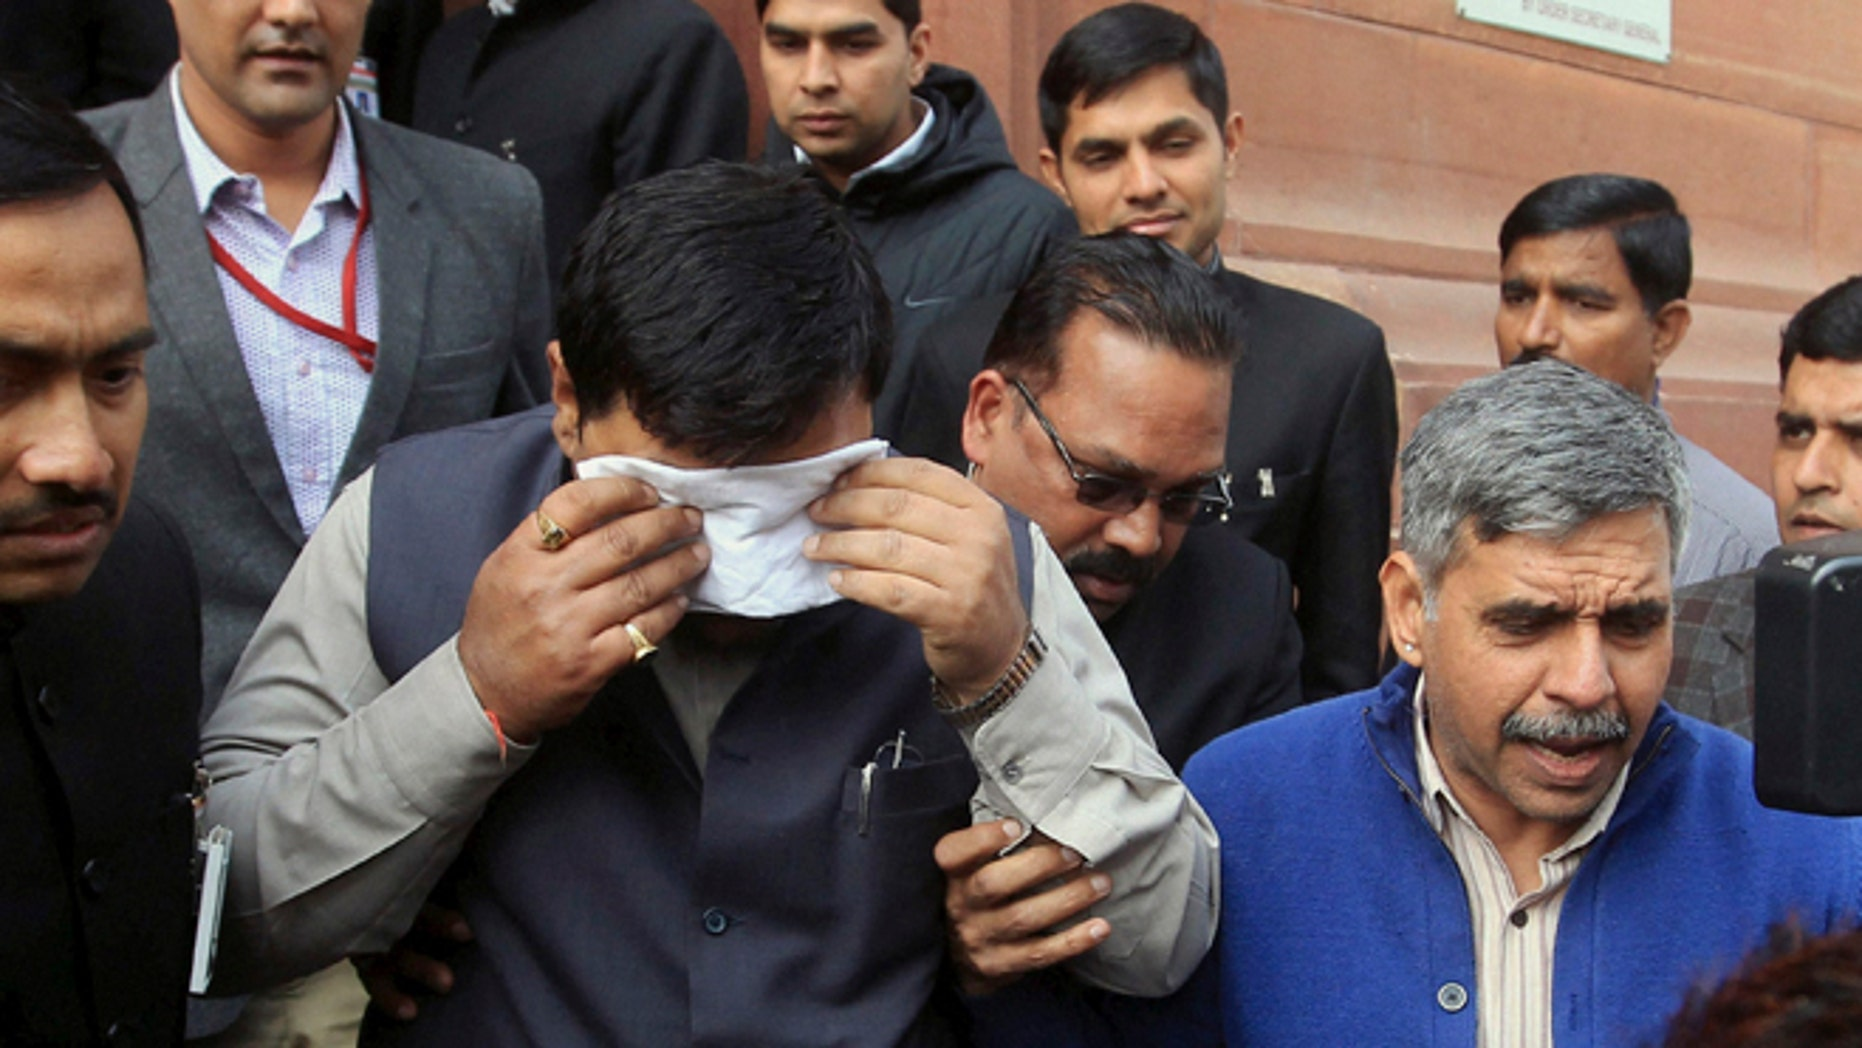 Feb. 13, 2014: An unidentified member of India's parliament covers his face with a handkerchief after being affected by pepper spray gas in New Delhi, India.